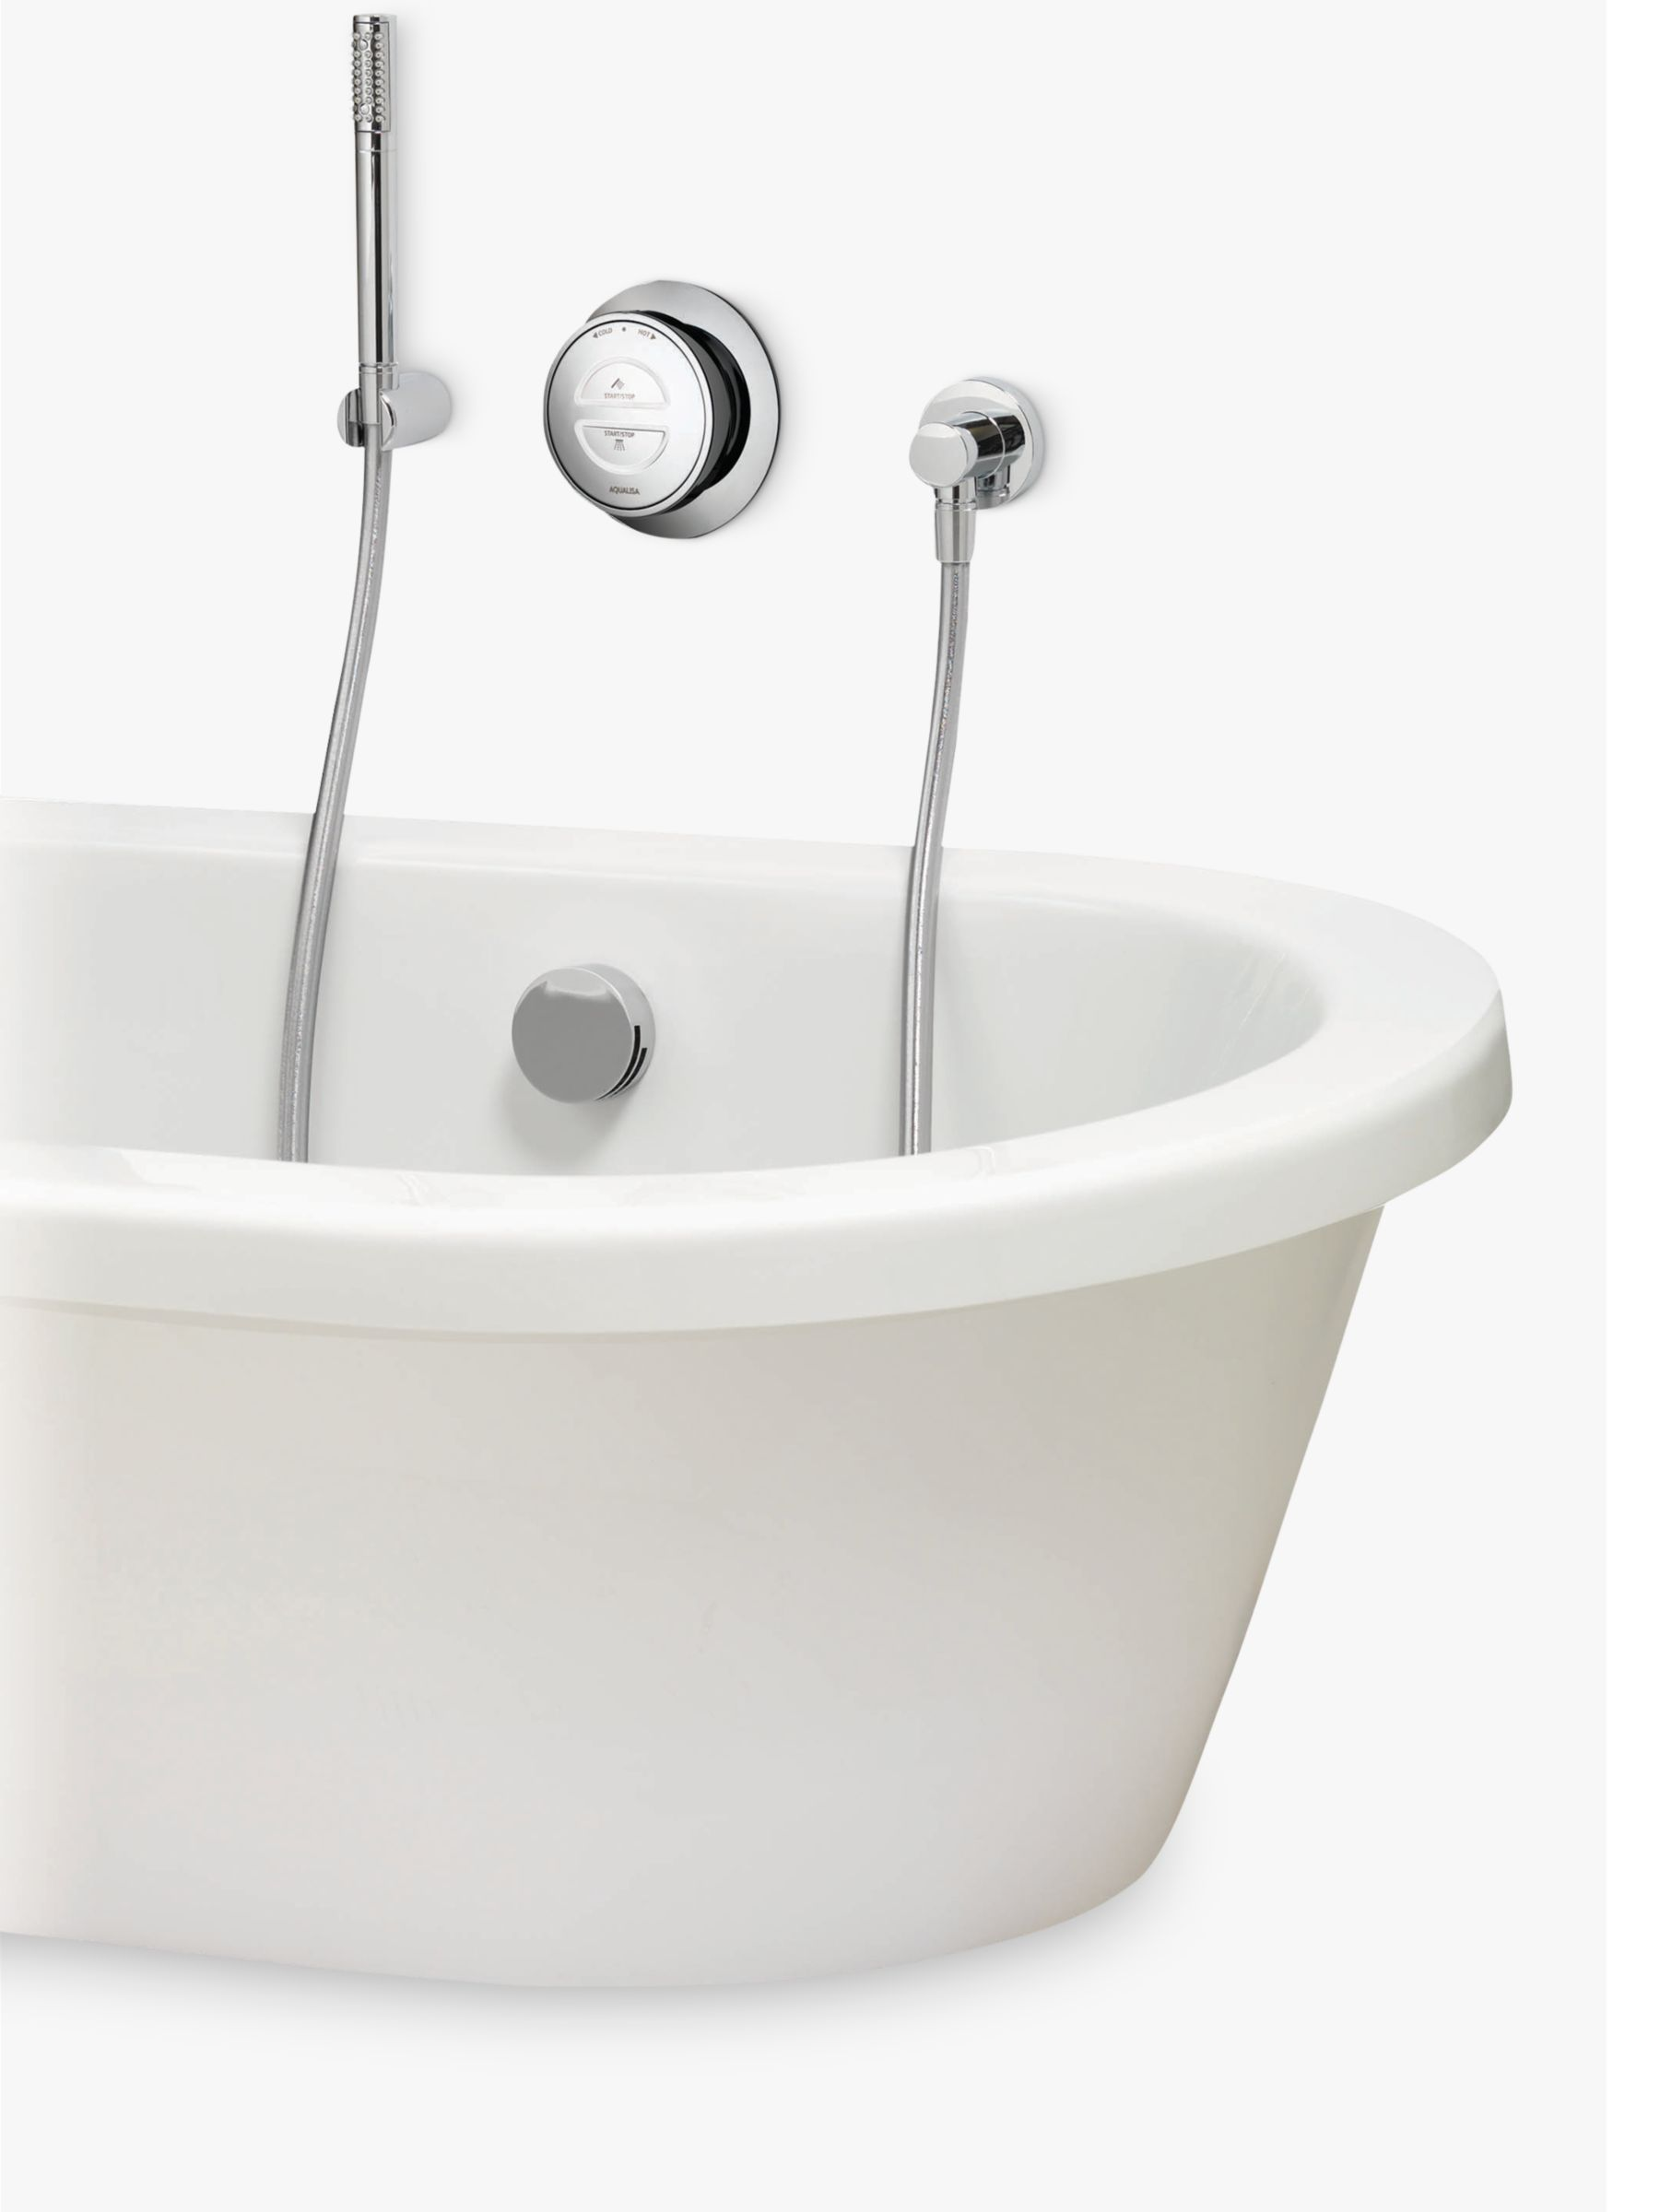 Aqualisa Aqualisa Rise XT Digital Gravity Pumped Bath with Overflow Filler and Hand Shower